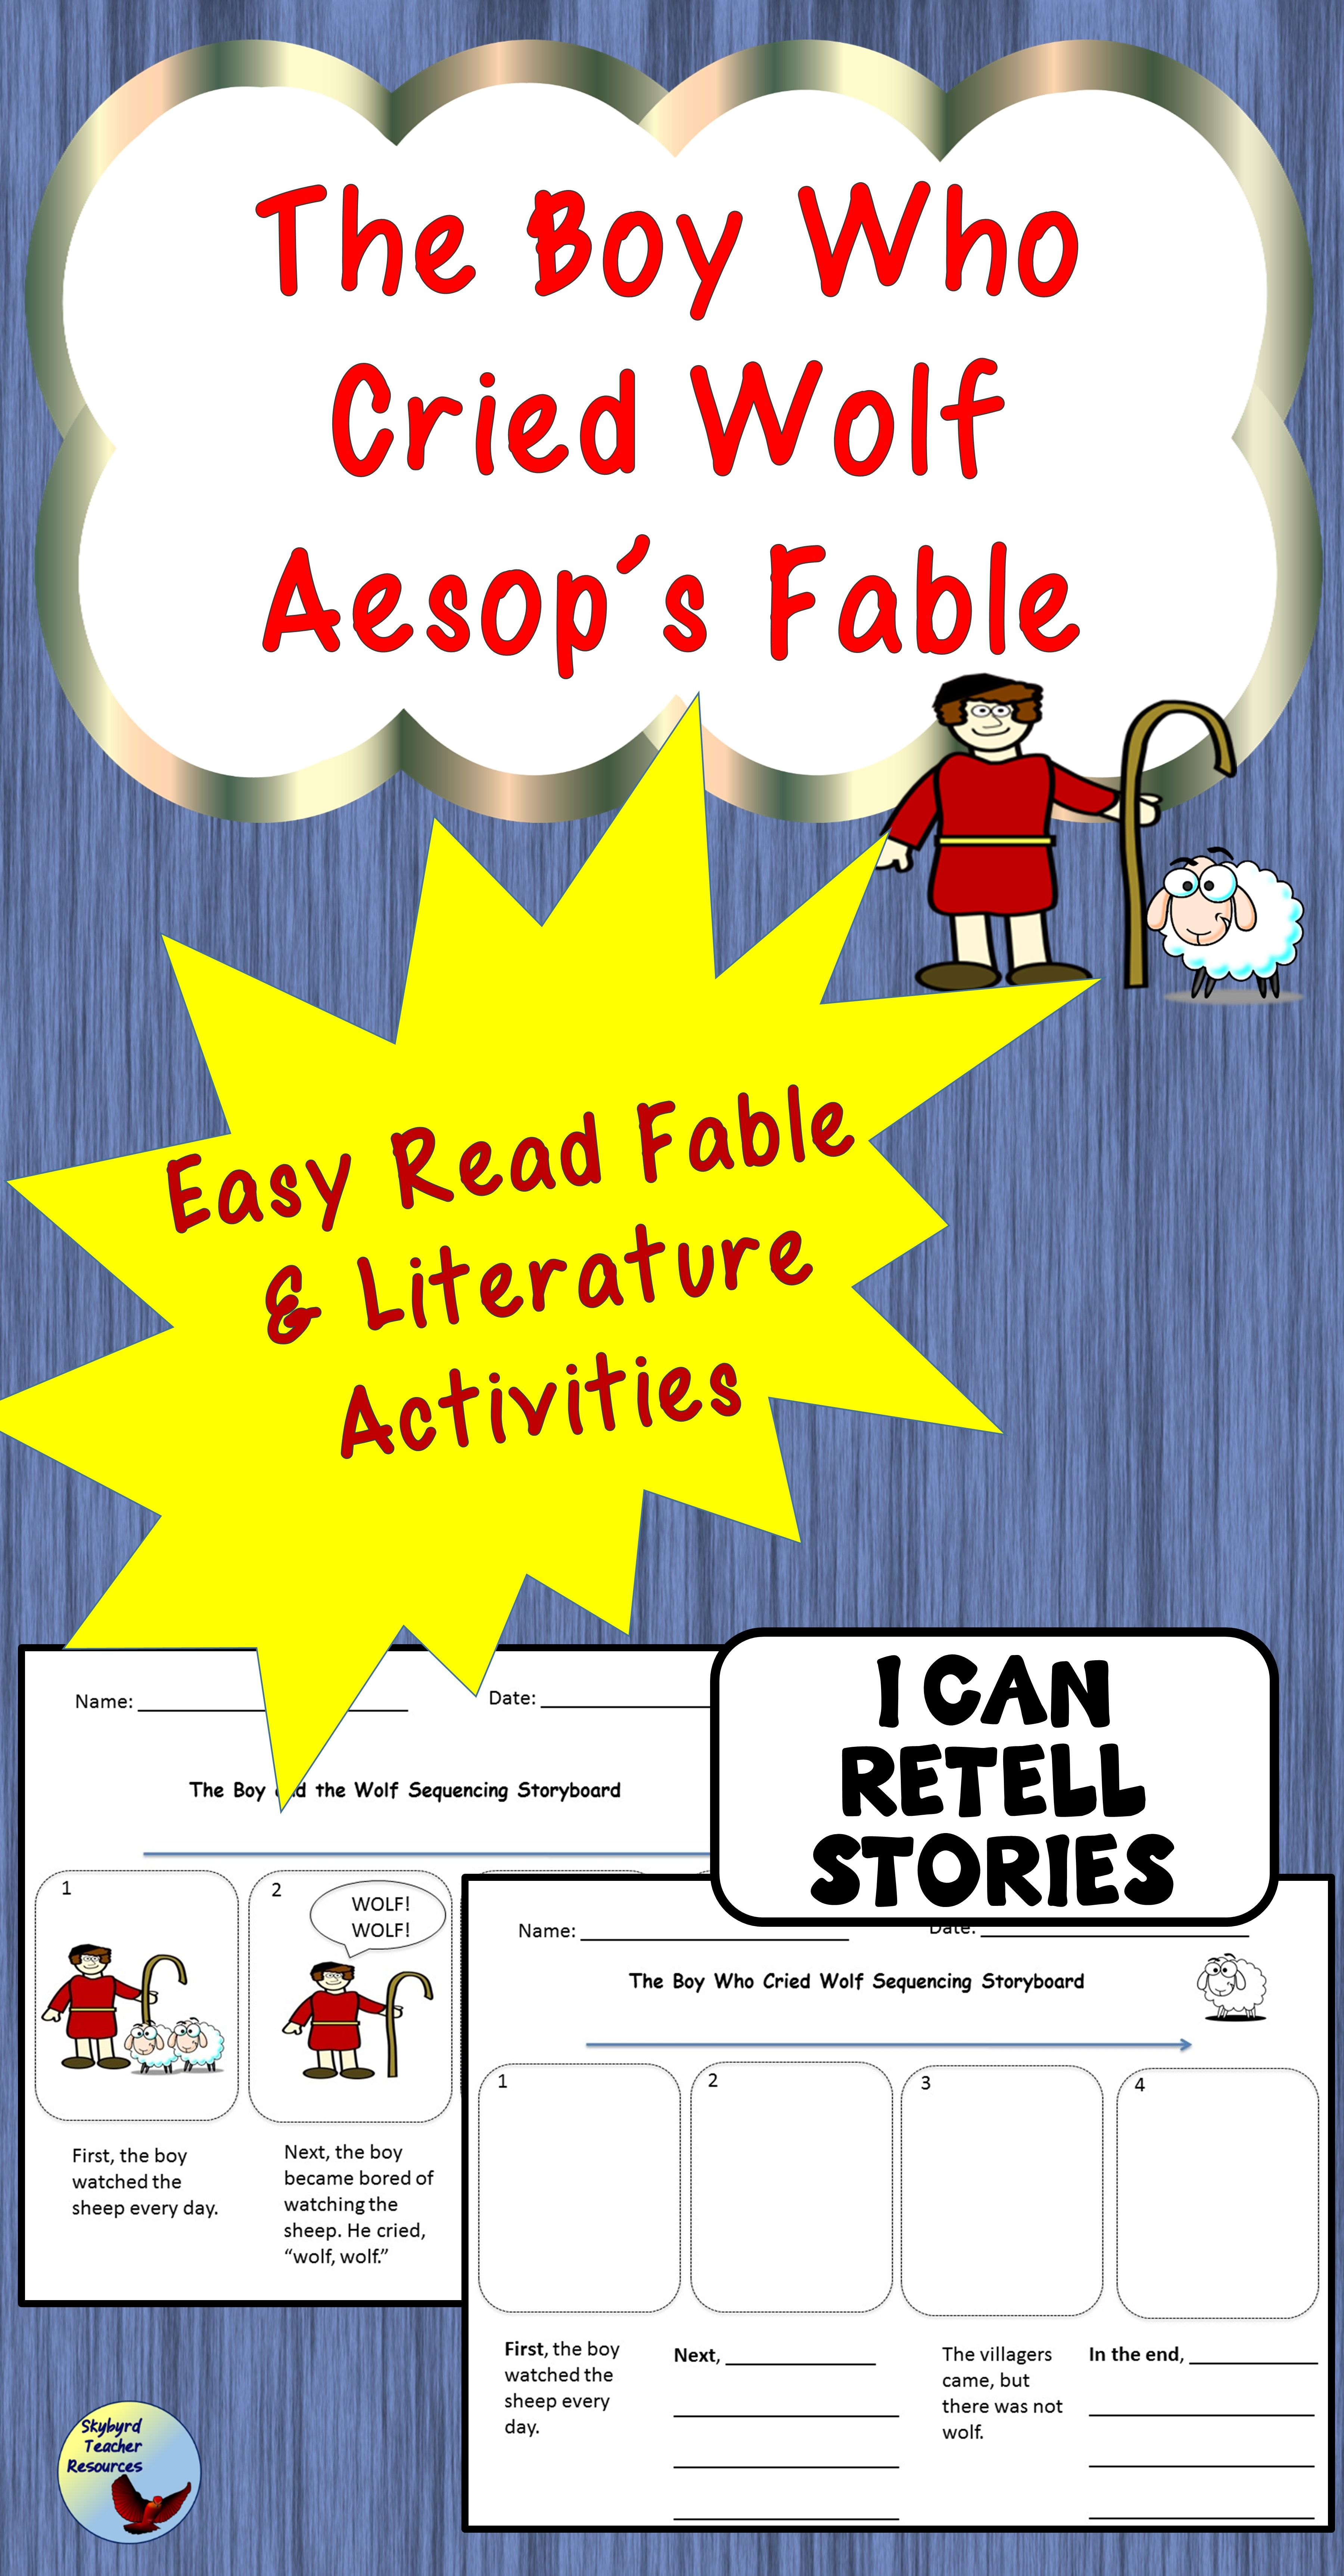 The Boy Who Cried Wolf Aesop S Fable Literature Activities Grade1 Grade 2 Esl Sped Fables Activities English Writing Exercises Literature Activities [ 6900 x 3600 Pixel ]